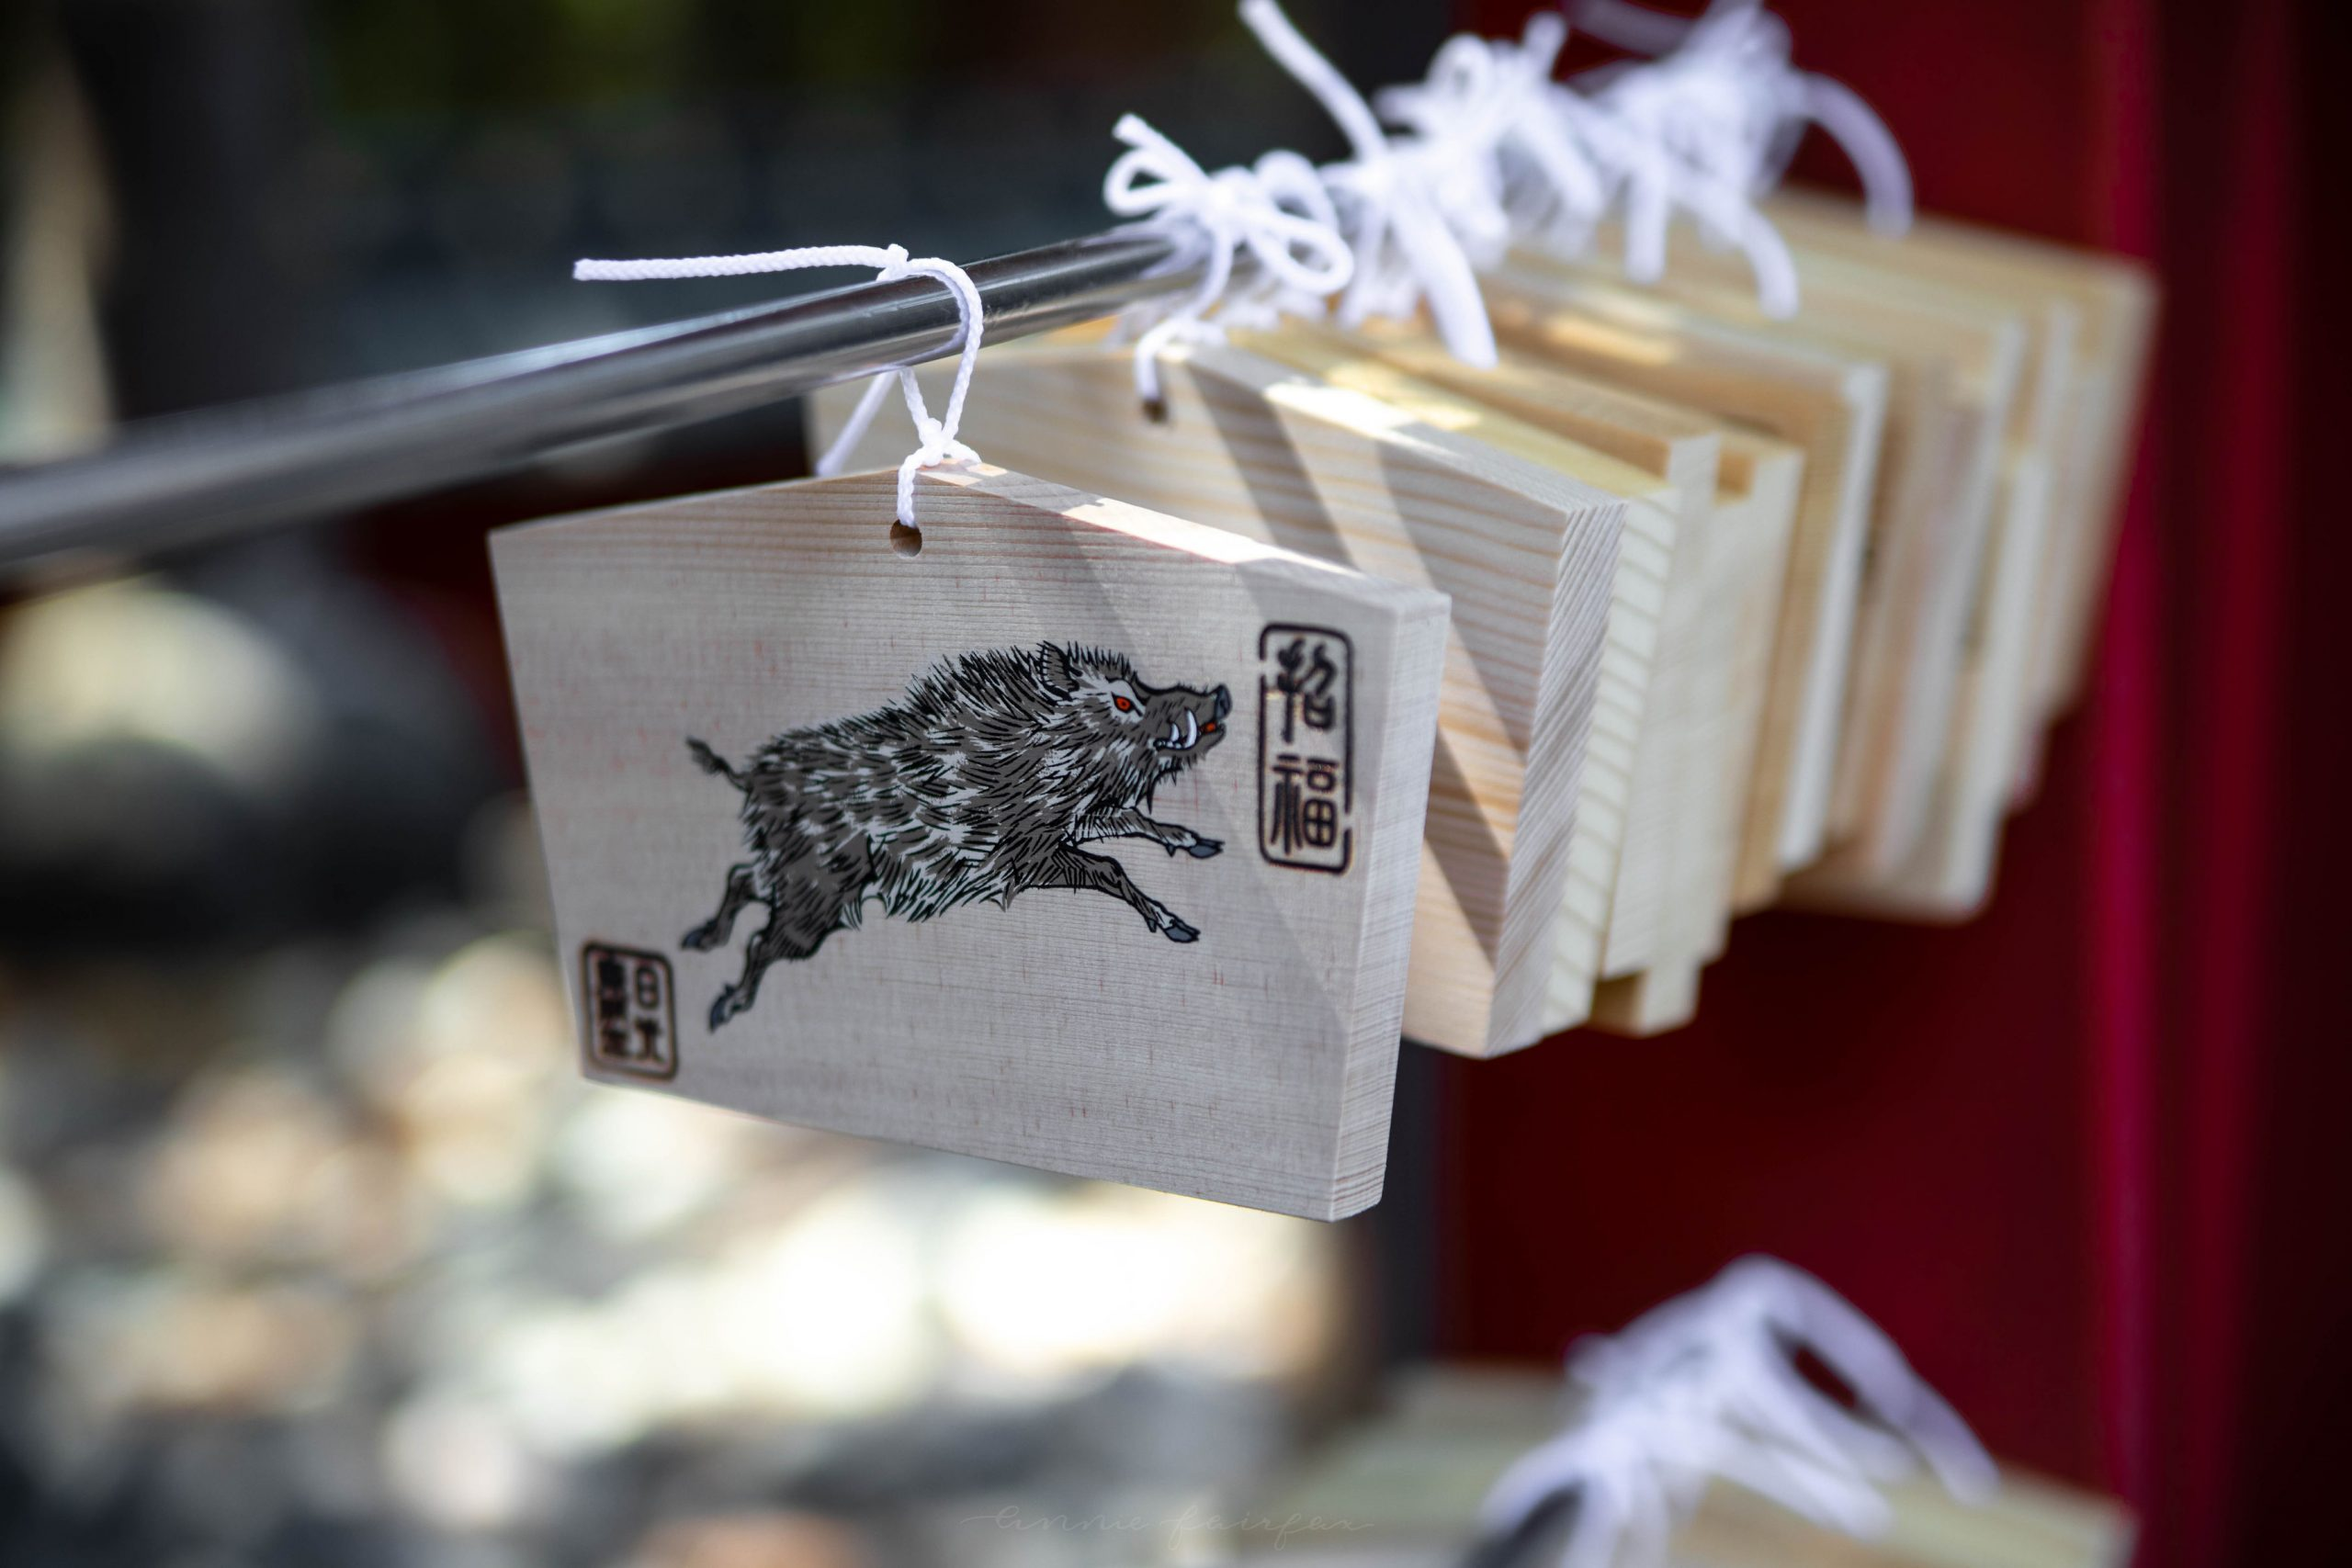 Wooden Ema Shinto Shrine Wish Prayer Tablets How to Use Them Shrine Etiquette by Annie Fairfax